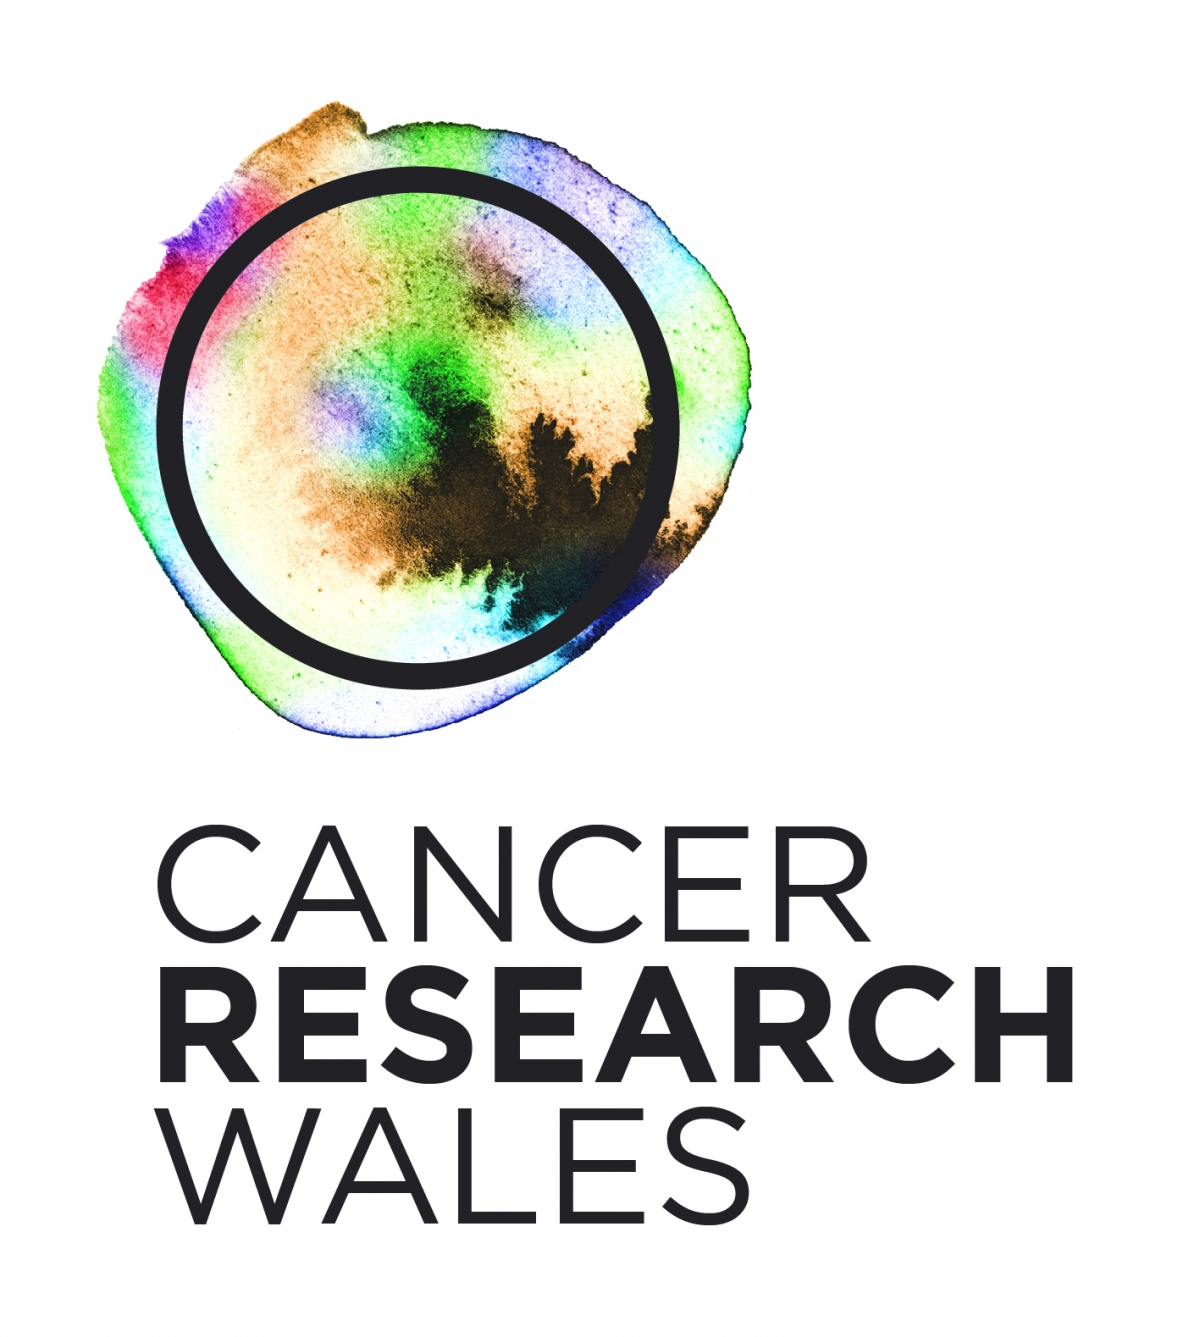 Cancer Research Wales eCards